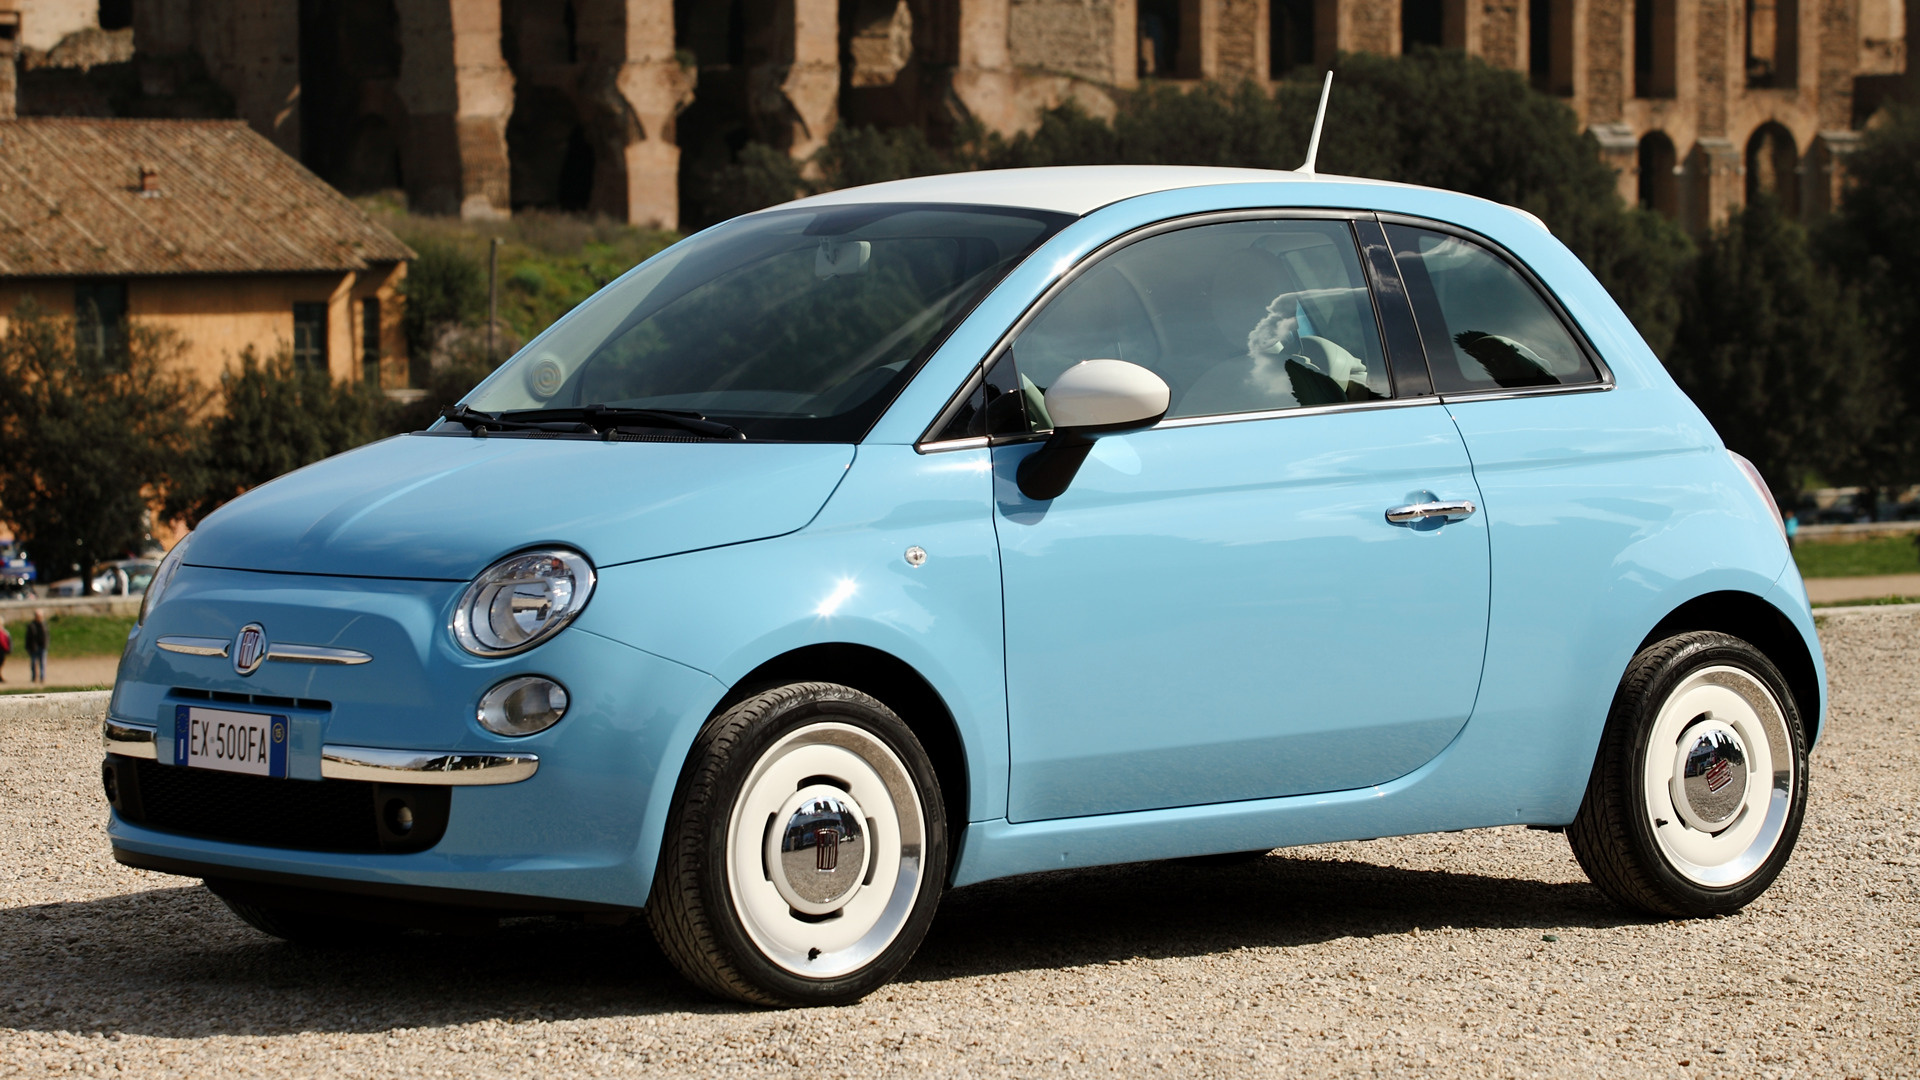 Fiat 500 Vintage '57 (2015) Wallpapers and HD Images - Car ...